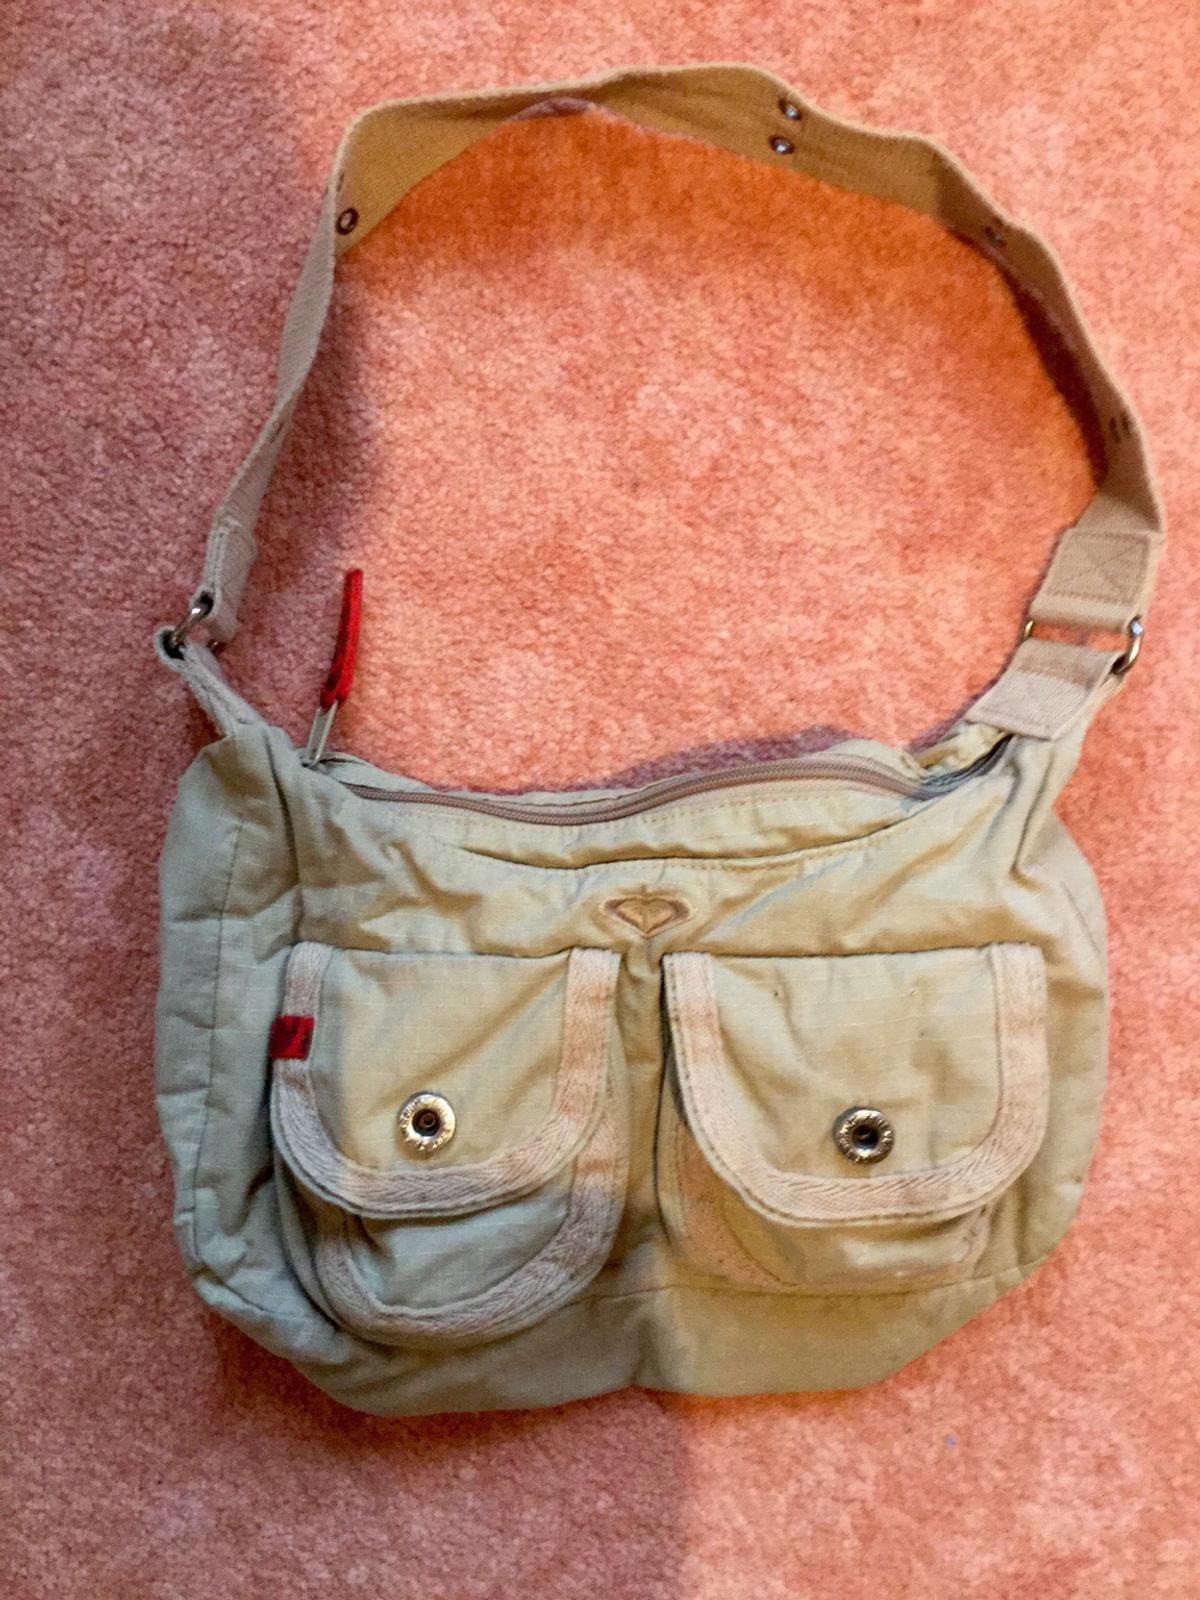 071fac03e8f53 Roxy Handtasche in 9427 Wolfhalden for CHF 15.00 for sale - Shpock